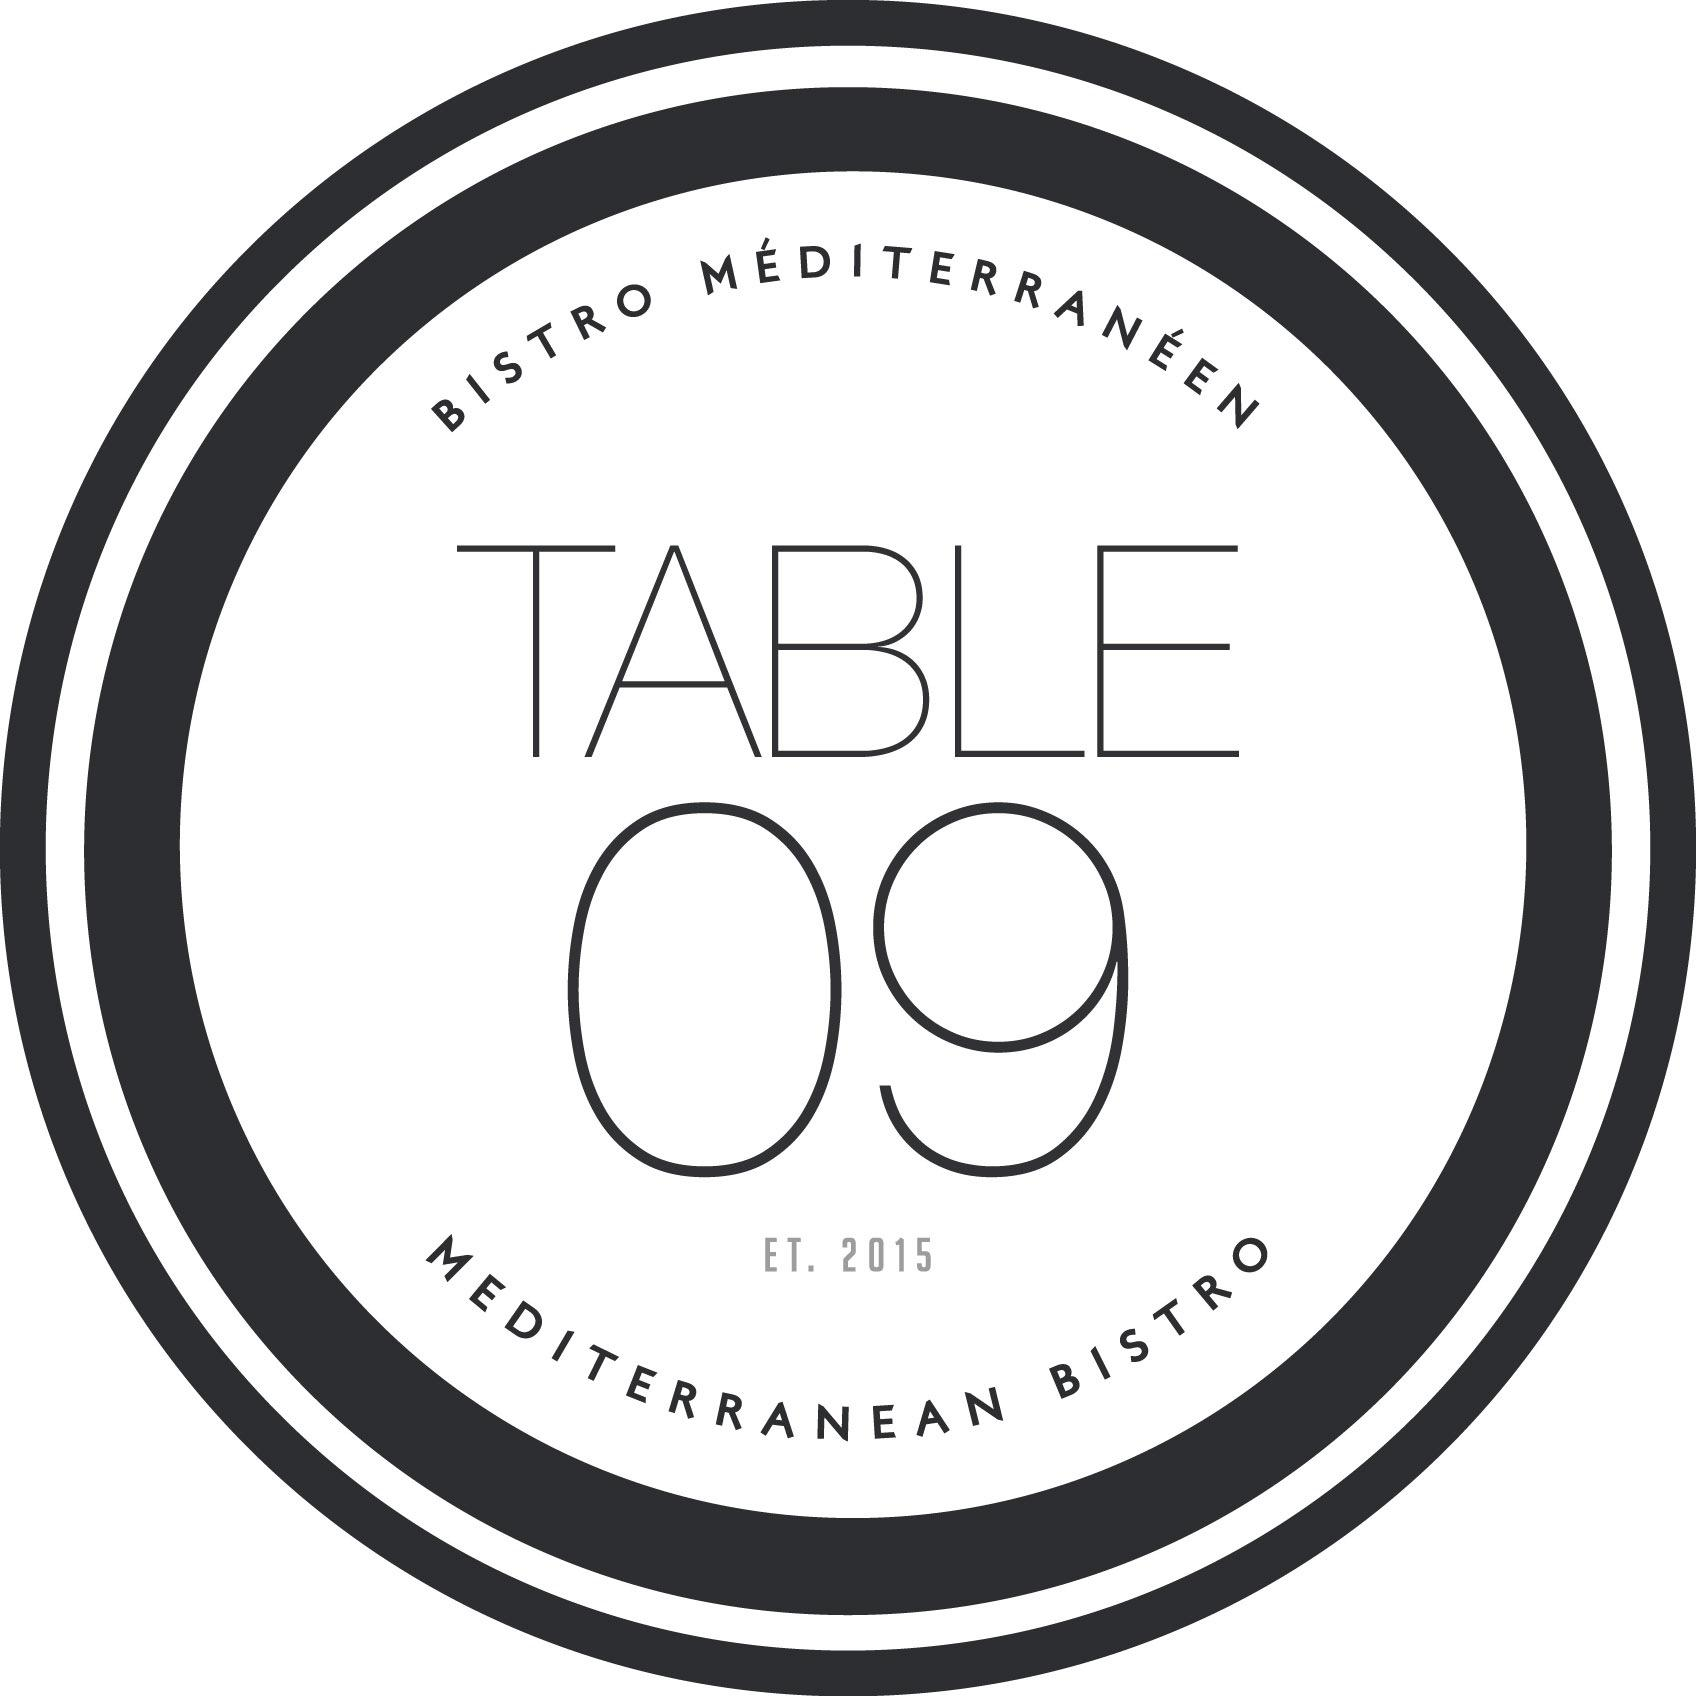 Table 09 table 09 twitter for Table 09 pointe claire